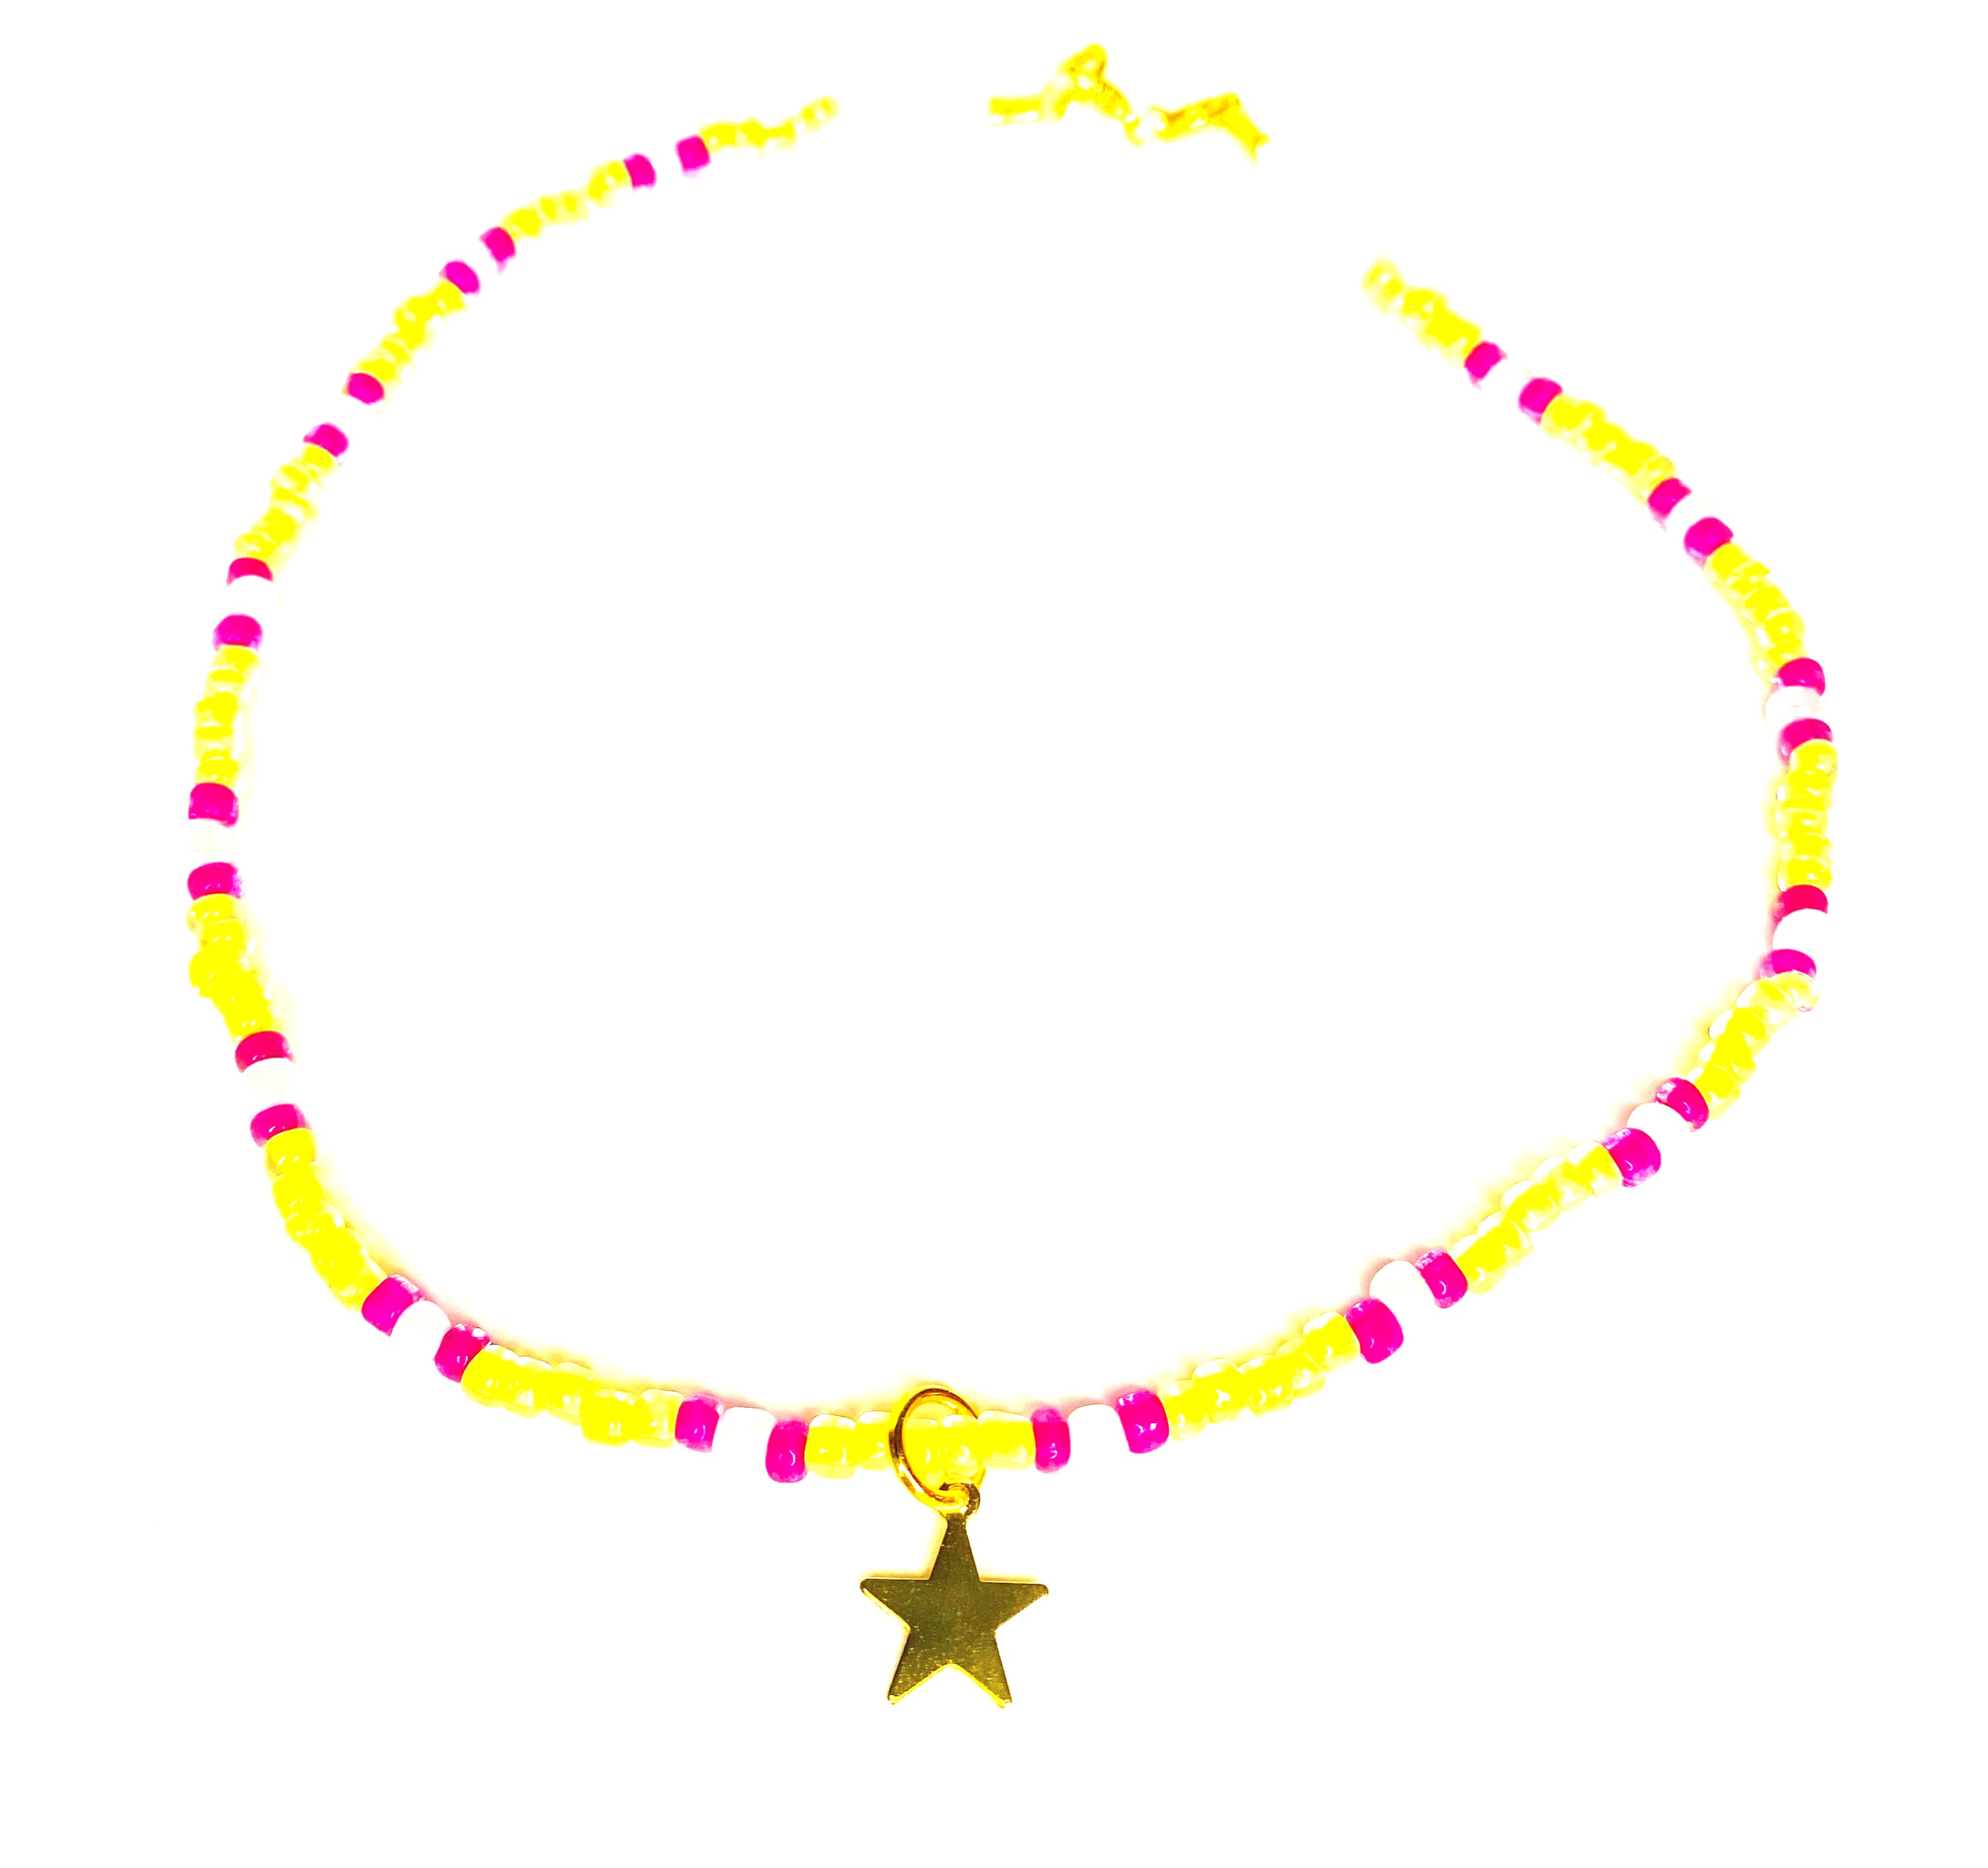 Beaded Yellow Necklace with Pearls and Star Charm